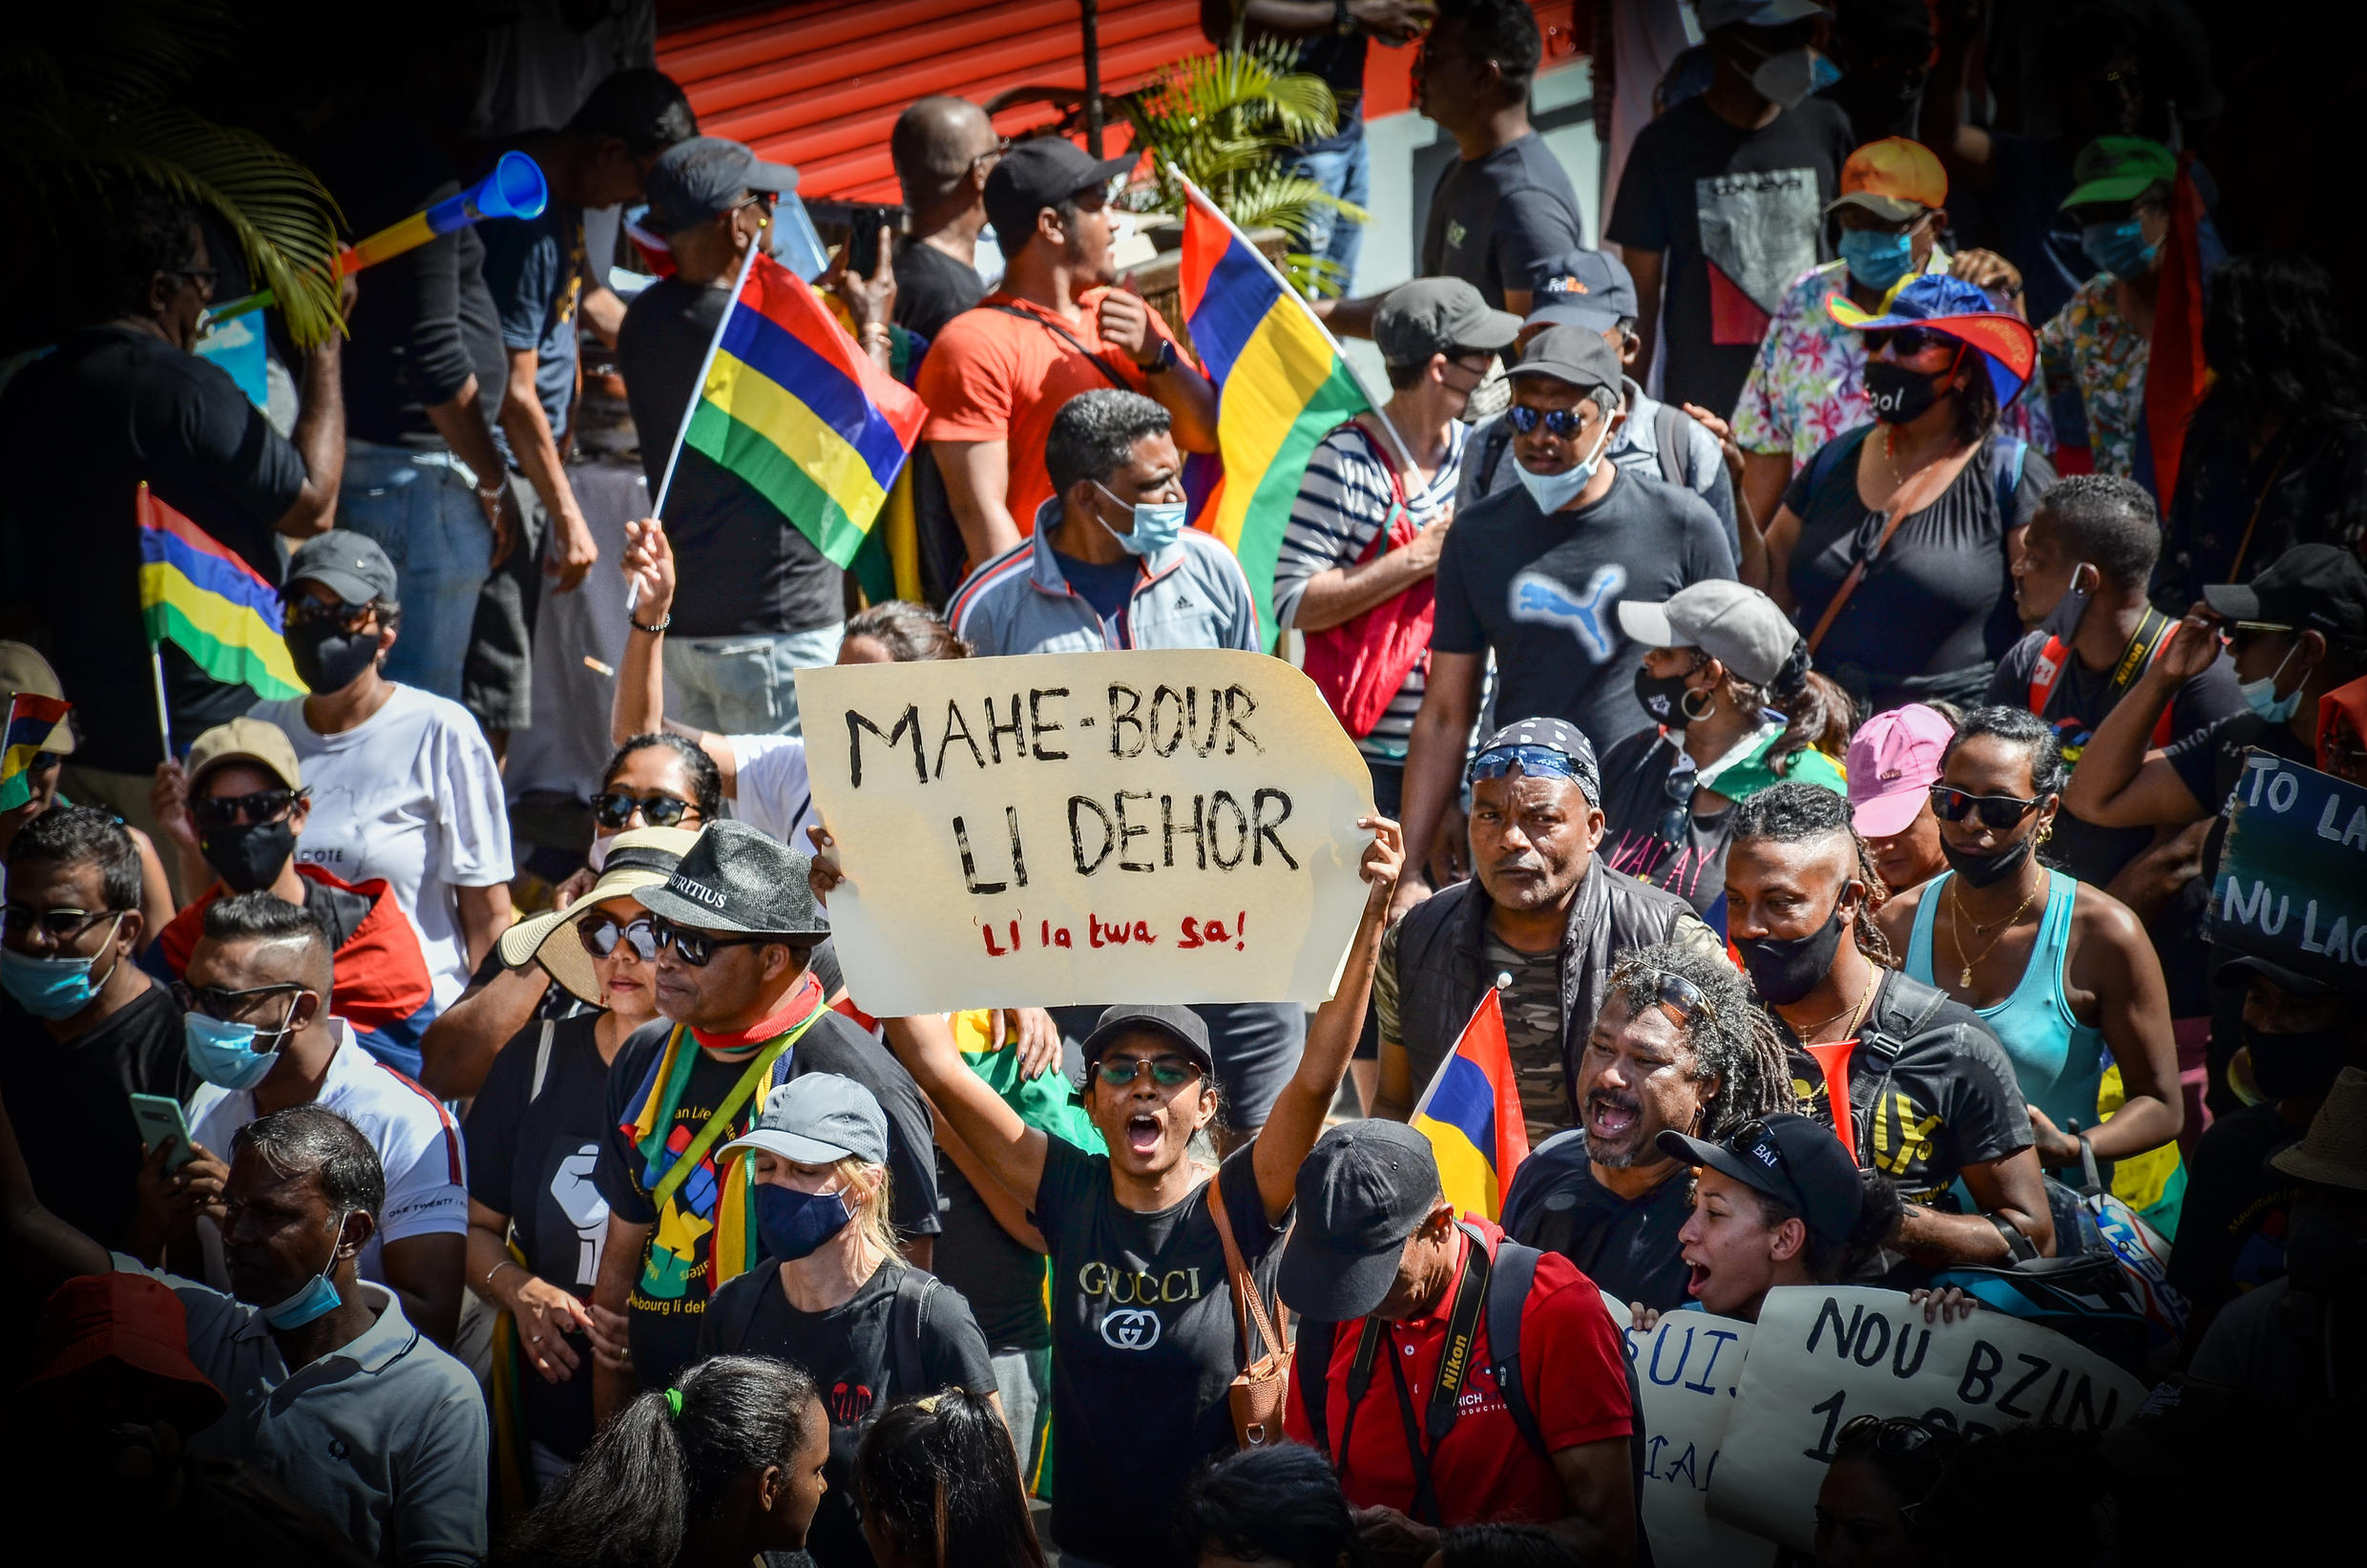 People in Mauritius demonstrated peacefully on 12 September in Mahebourg, holding flags and banners, calling for change.